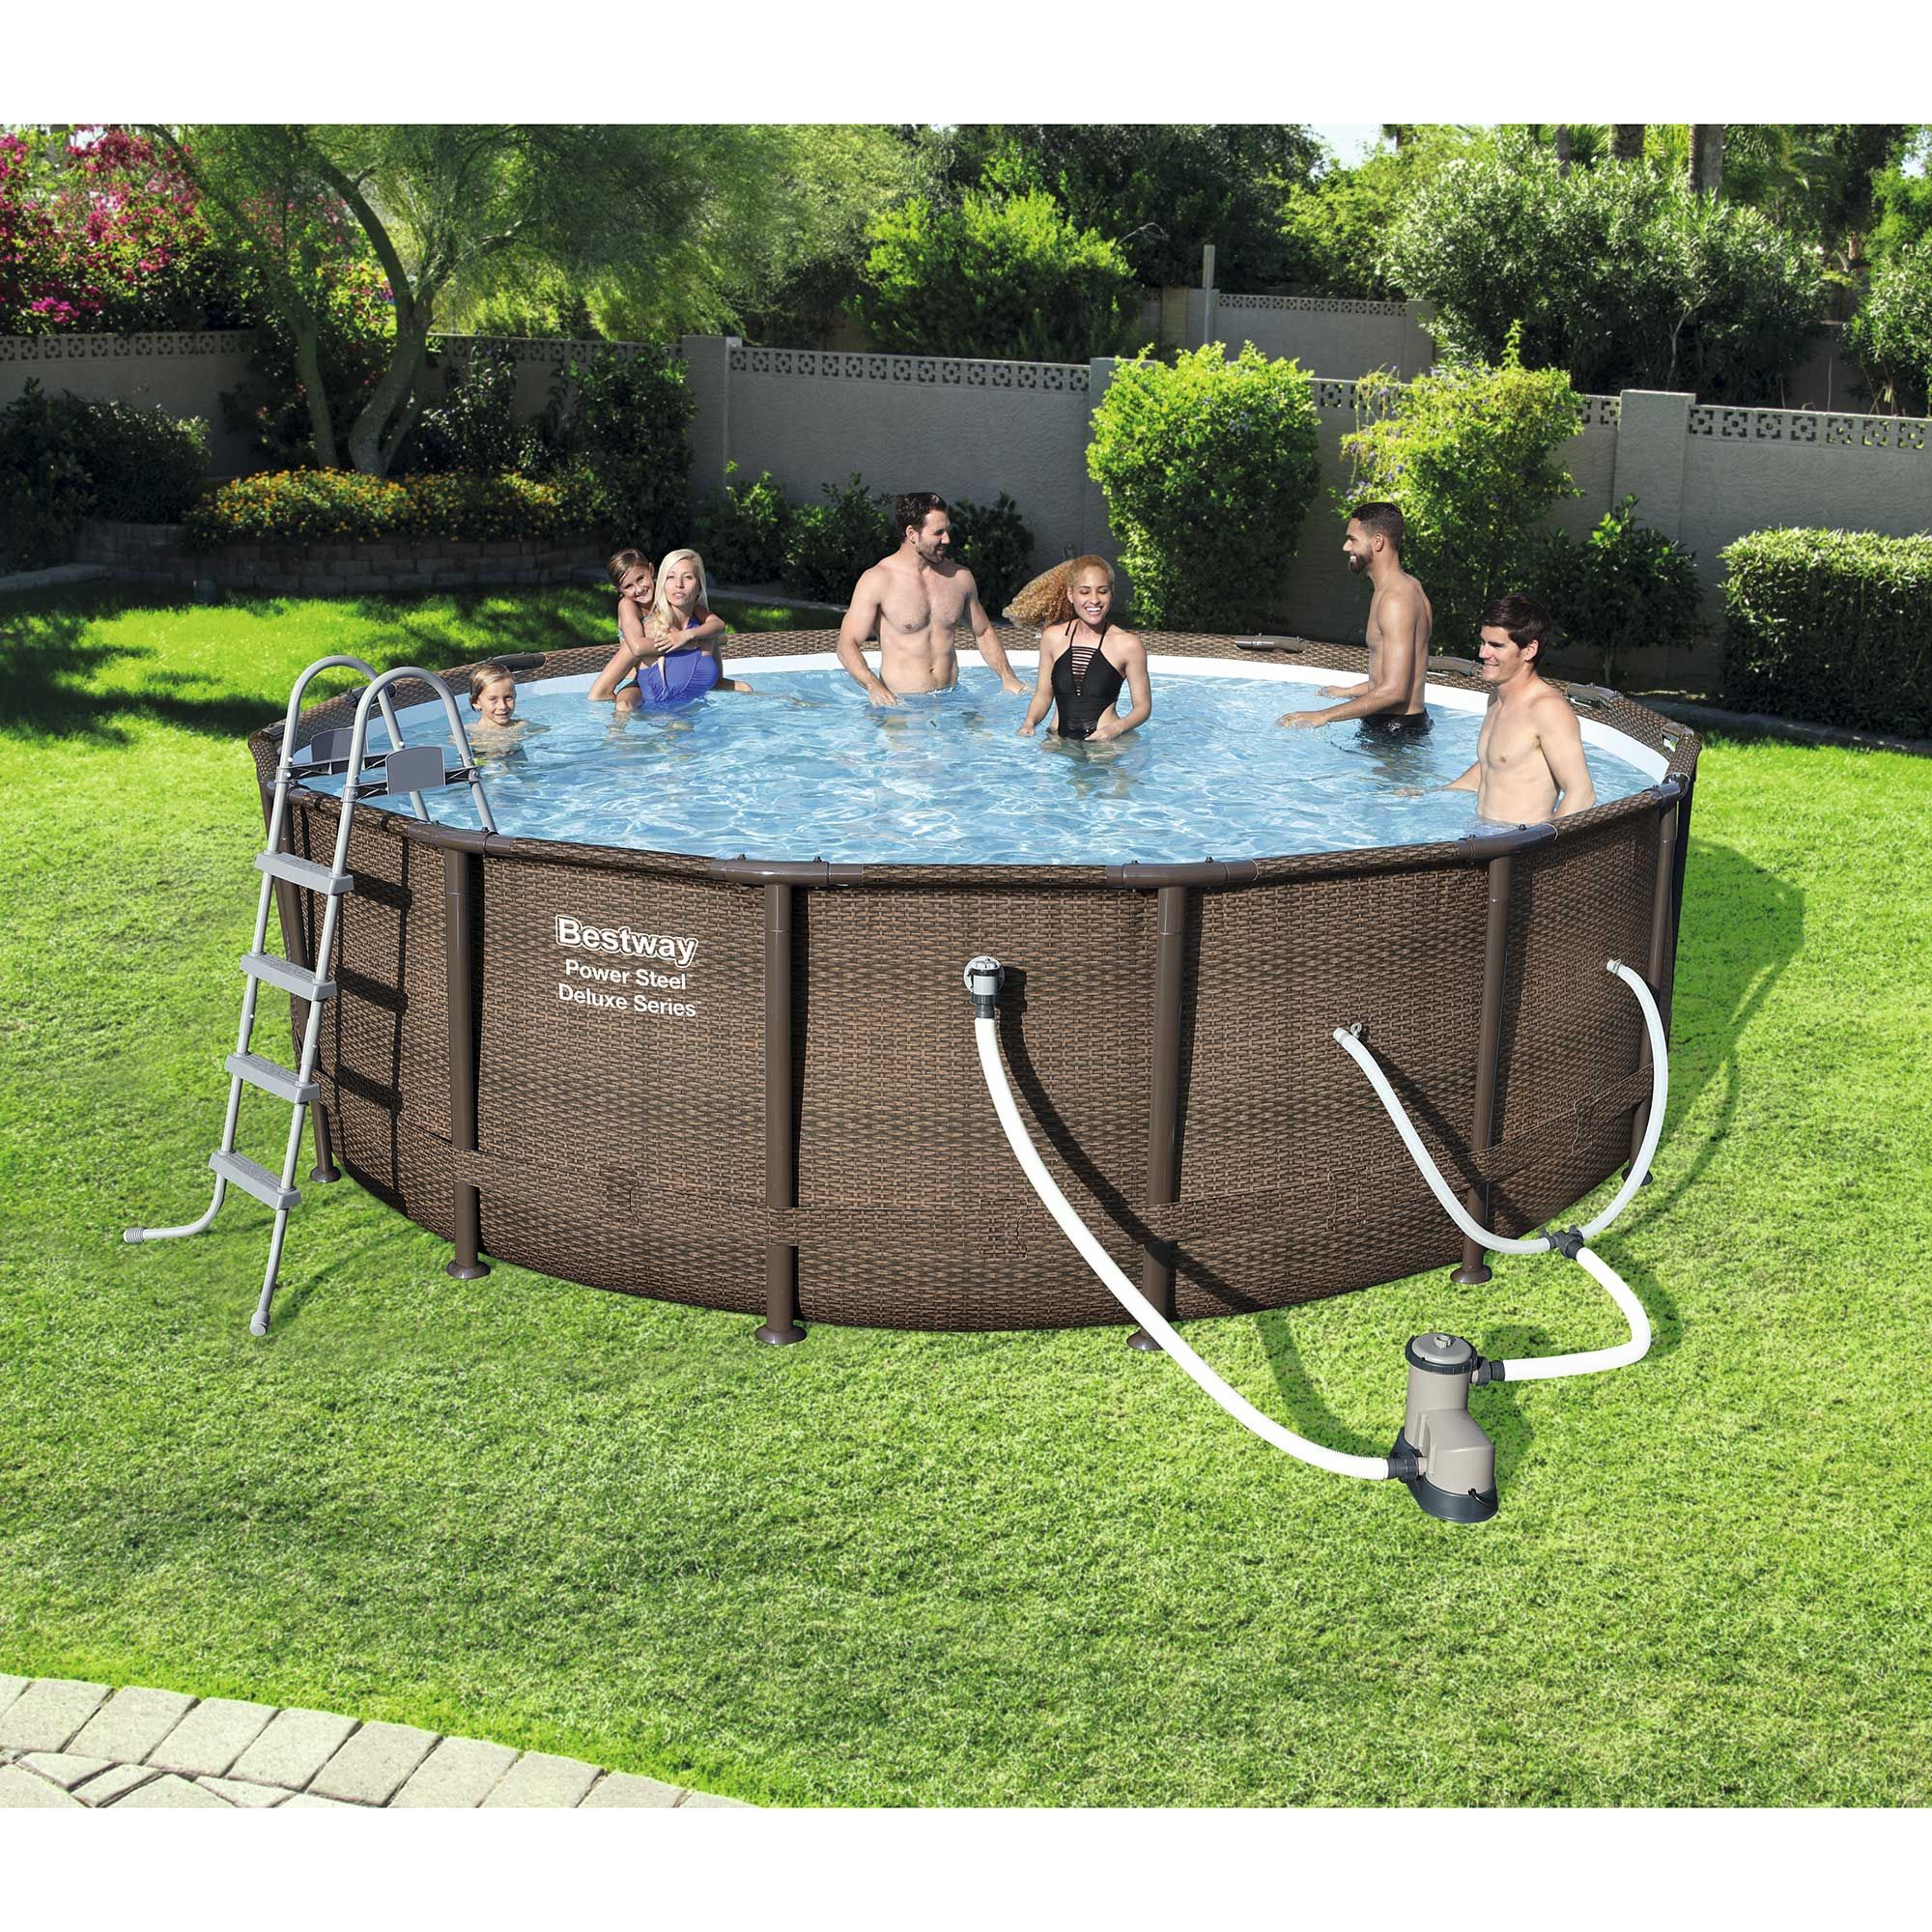 Bestway 16 X 48 Power Steel Frame Above Ground Swimming Pool Set With Pump Walmart Com In 2020 Above Ground Swimming Pools Swimming Pools Backyard Pool Landscaping